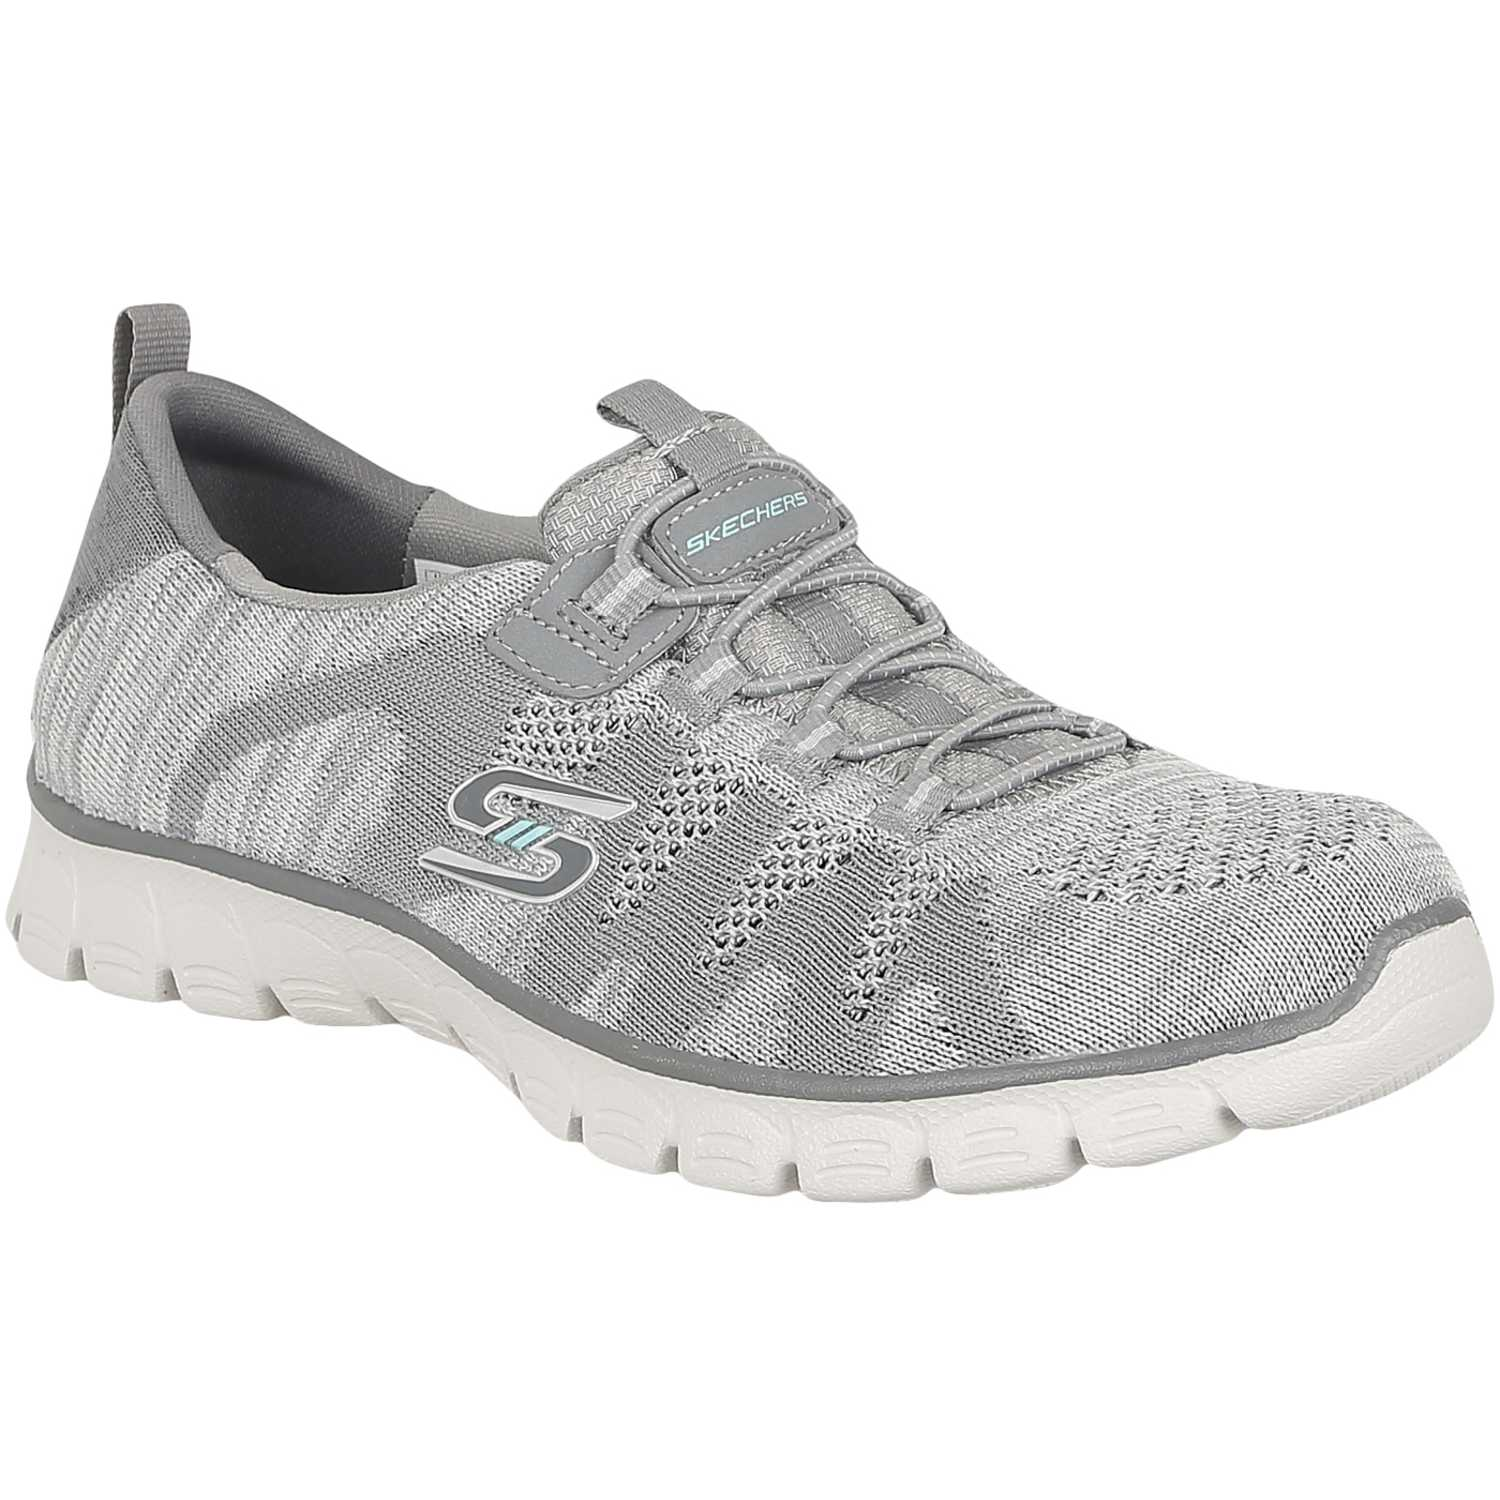 Zapatos grises casual Skechers para mujer oMcgE4Cfbd